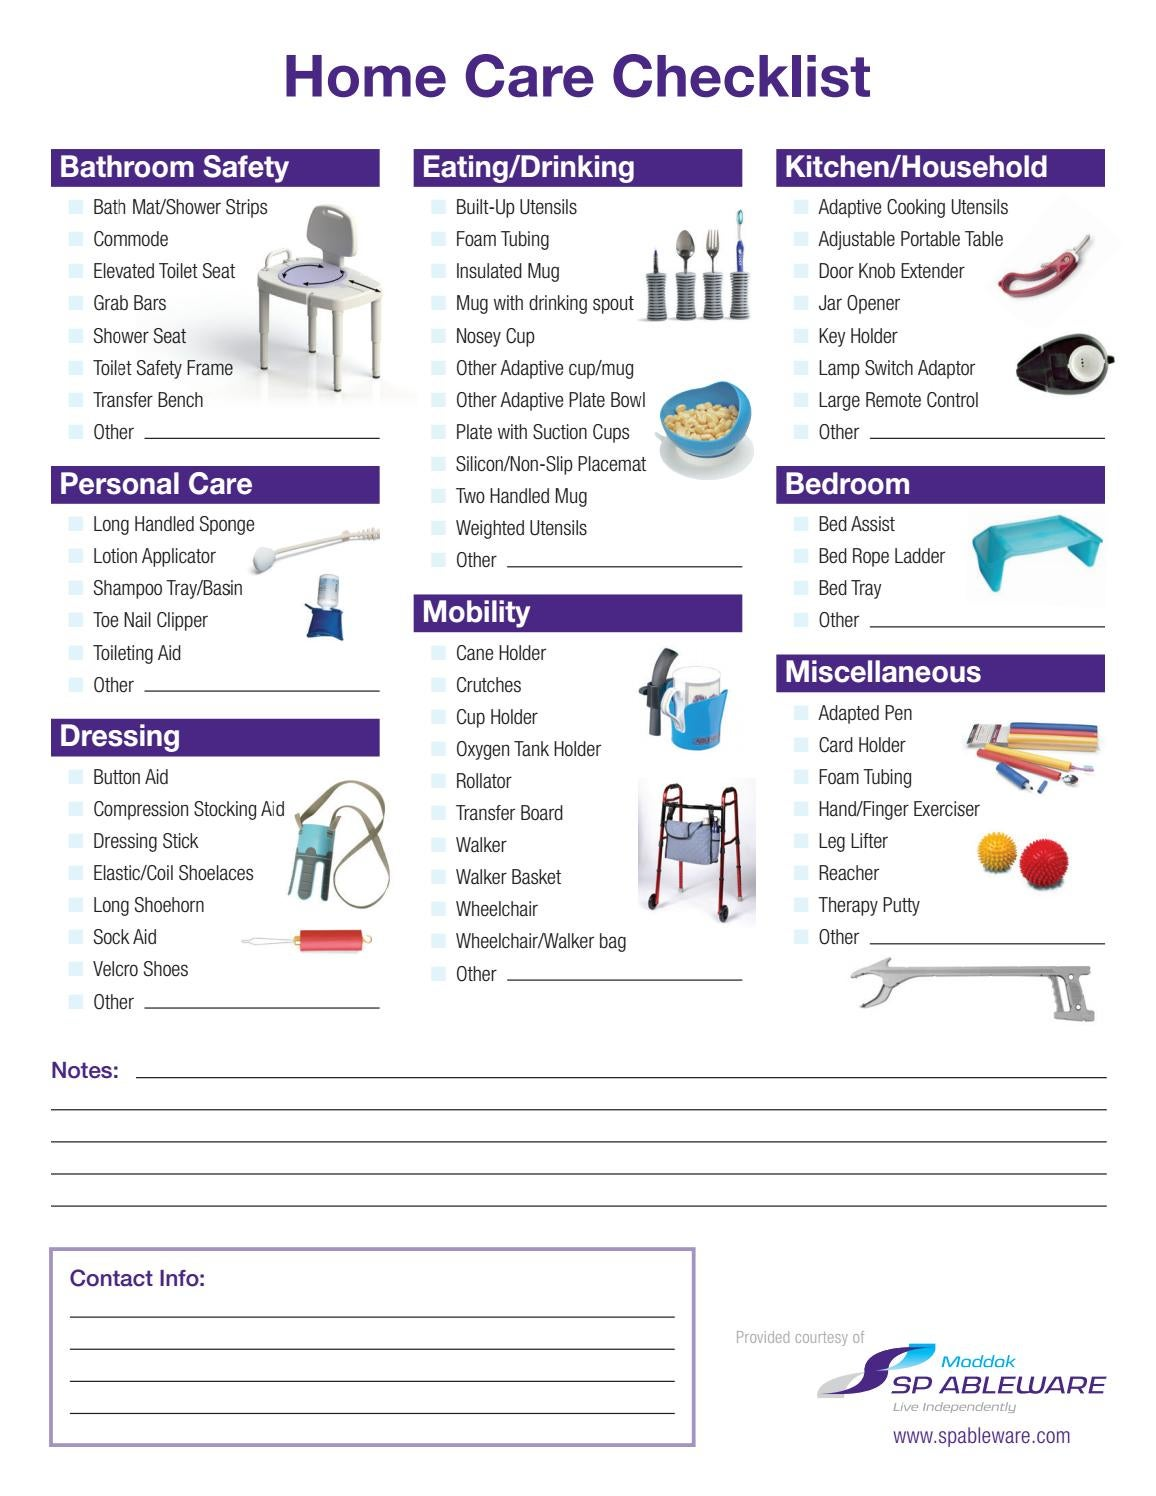 Home Care Checklist by SP Scienceware - Bel-Art - HB